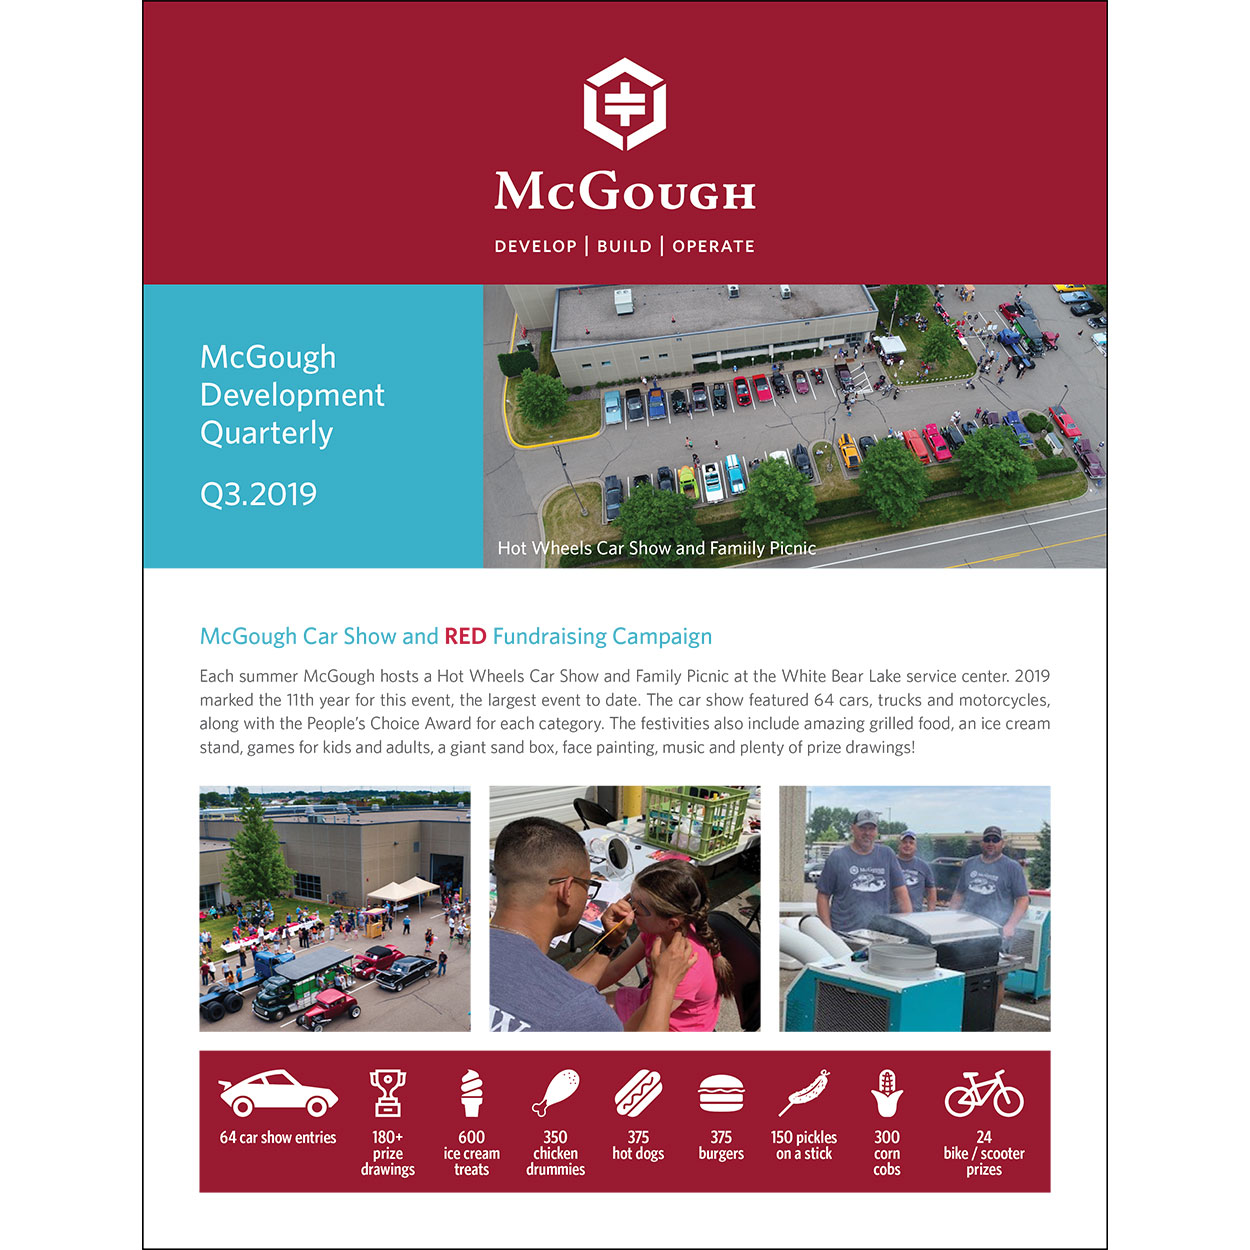 McGough Development Quarterly Newsletter Q3 2019